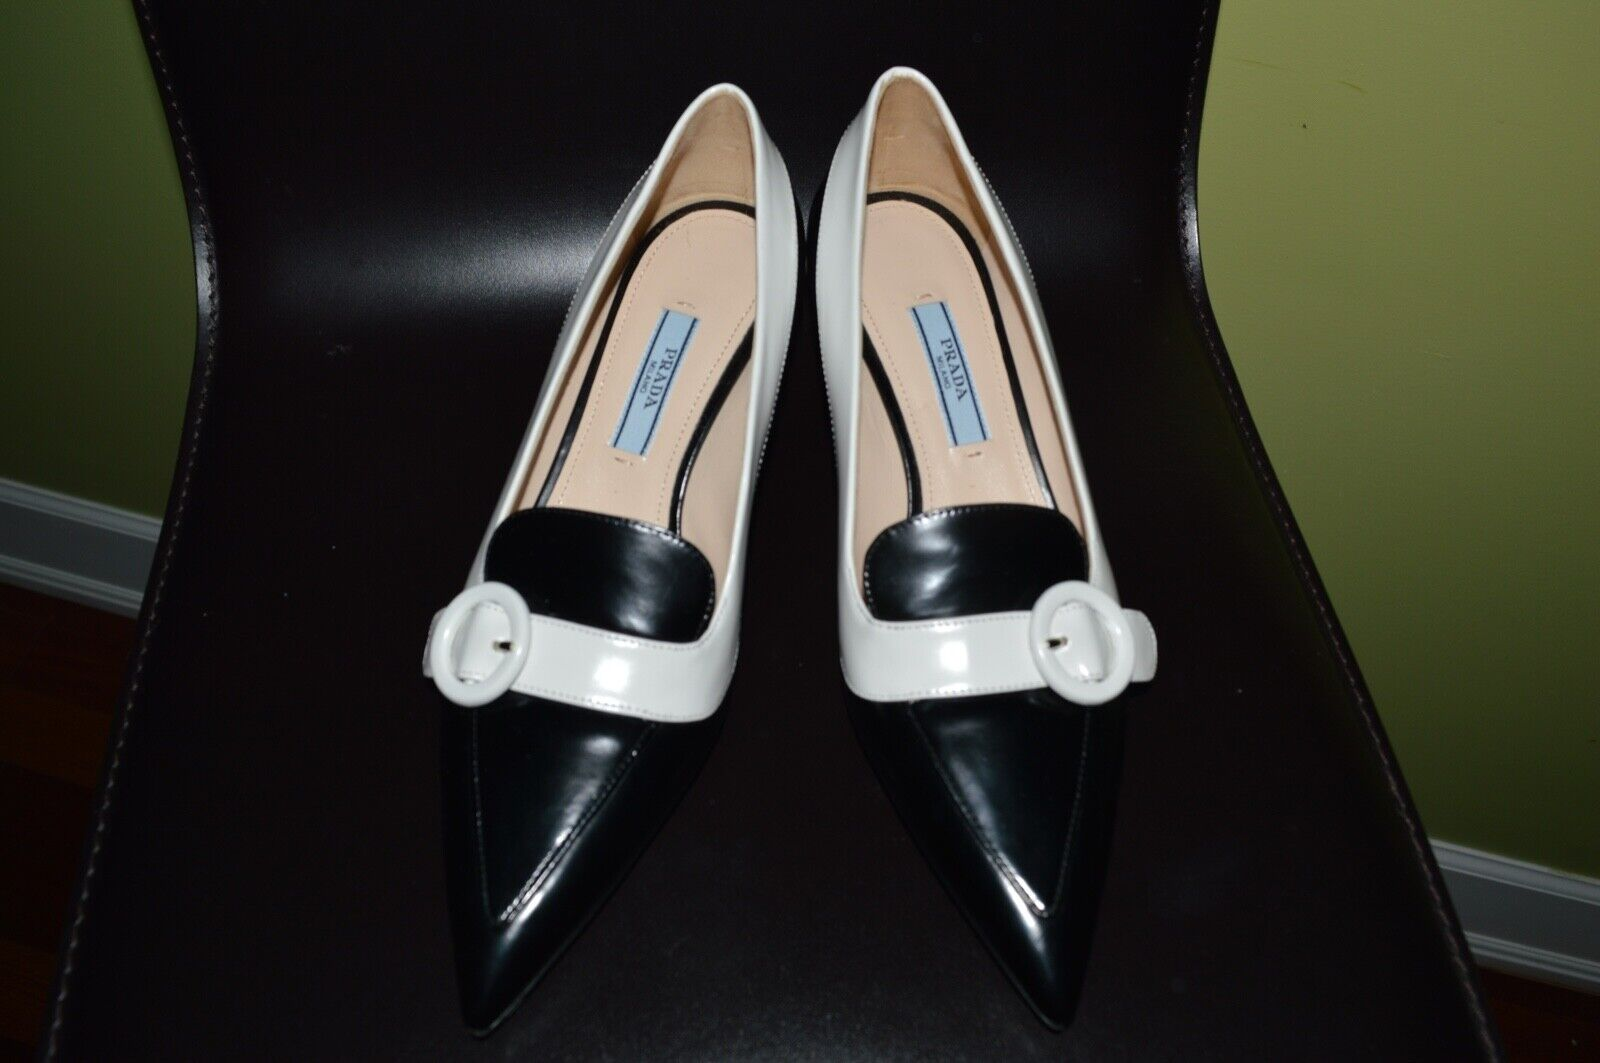 PRADA mostra POINTED TOE CALF CLASSIC  PUMPS nero  BIANCO TRIM SZ -35  US -5  80% di sconto